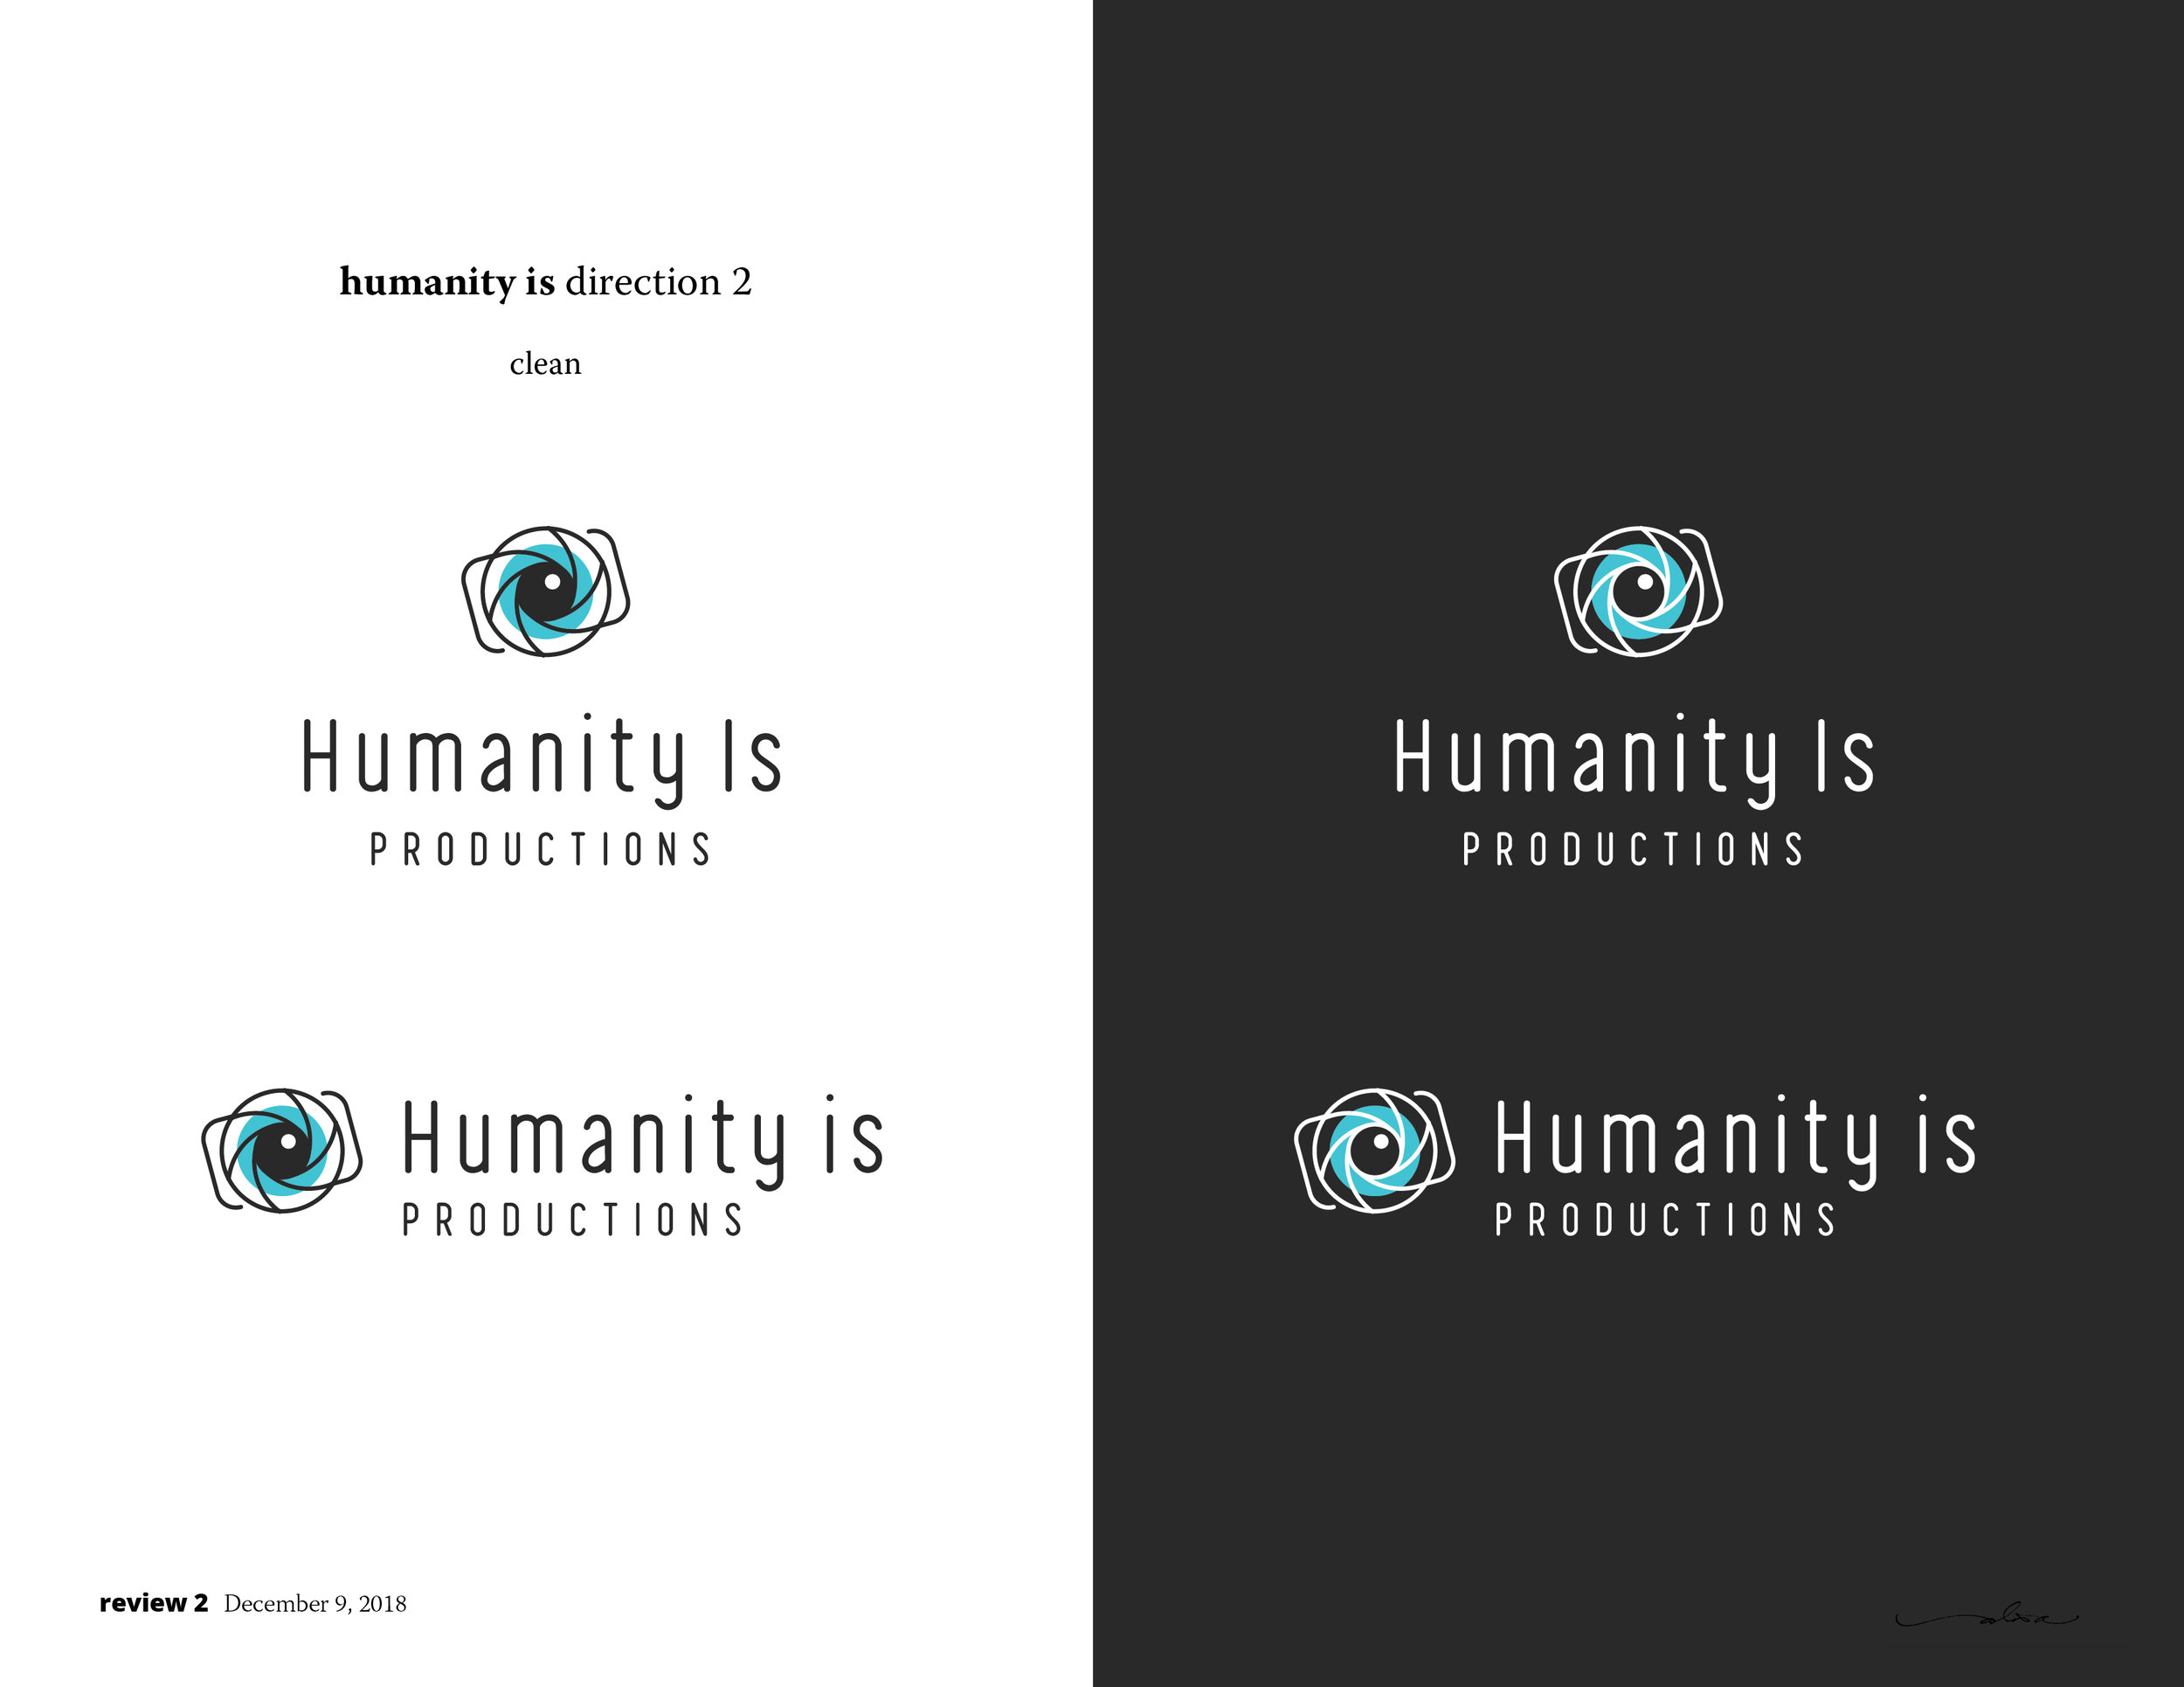 20181209_HumanityIs-Logo_Review2-v0-012.jpg